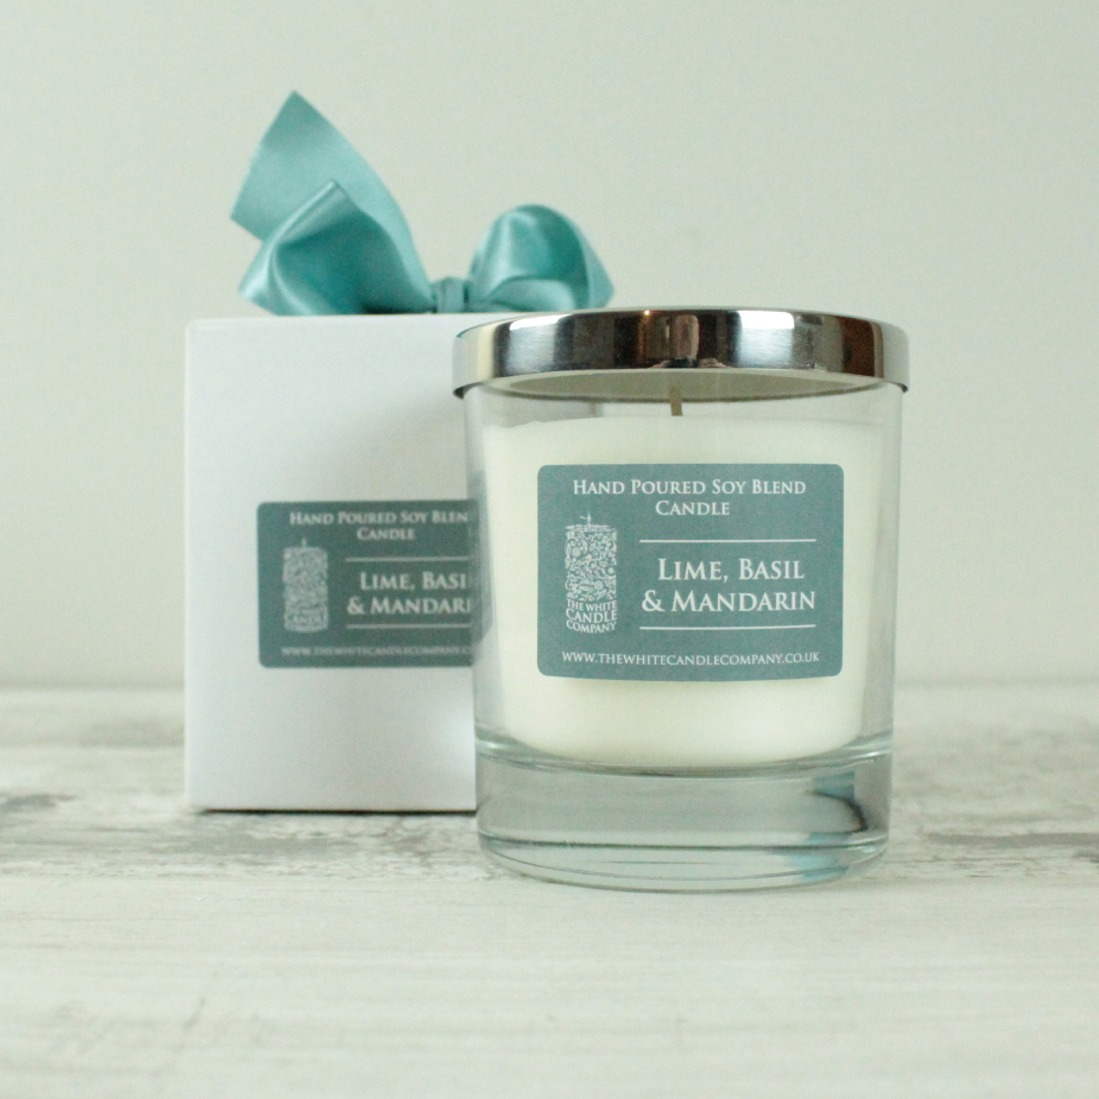 Lime, Basil & Mandarin Scented Candle - 50hrs